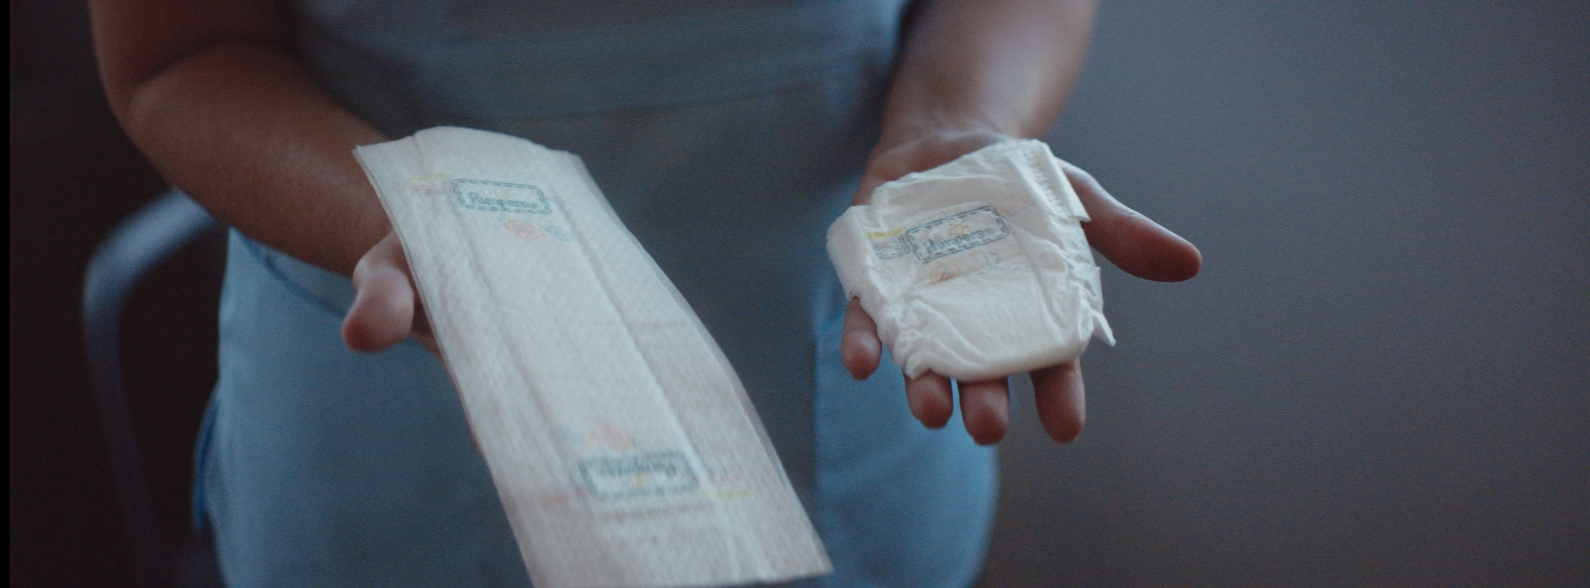 Pampers introduces the first-of-its-kind NICU Flat Diaper for babies whose skin is too sensitive to wear a traditional diaper. © Business Wire/P&G